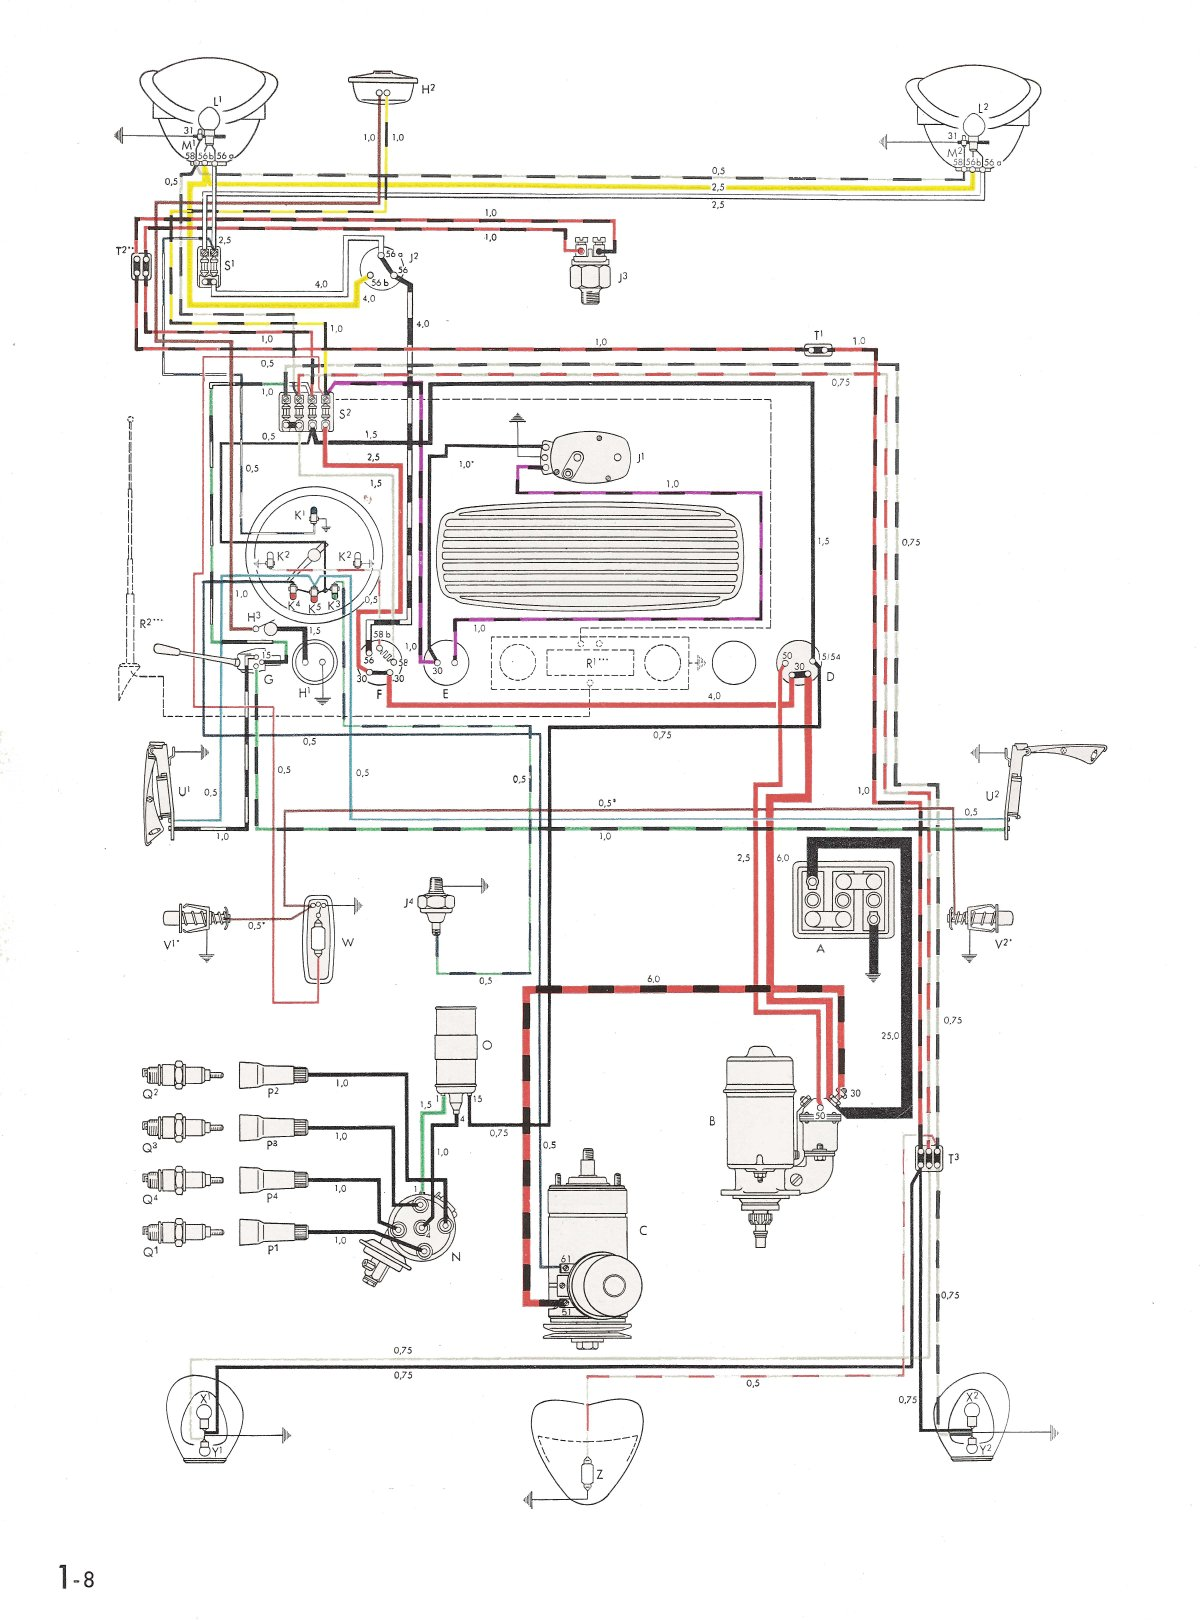 vw super beetle fuel injection wiring diagram 4 5 petraoberheit de \u2022thesamba com type 1 wiring diagrams rh thesamba com 1978 super beetle wiring diagram vw beetle generator wiring diagram